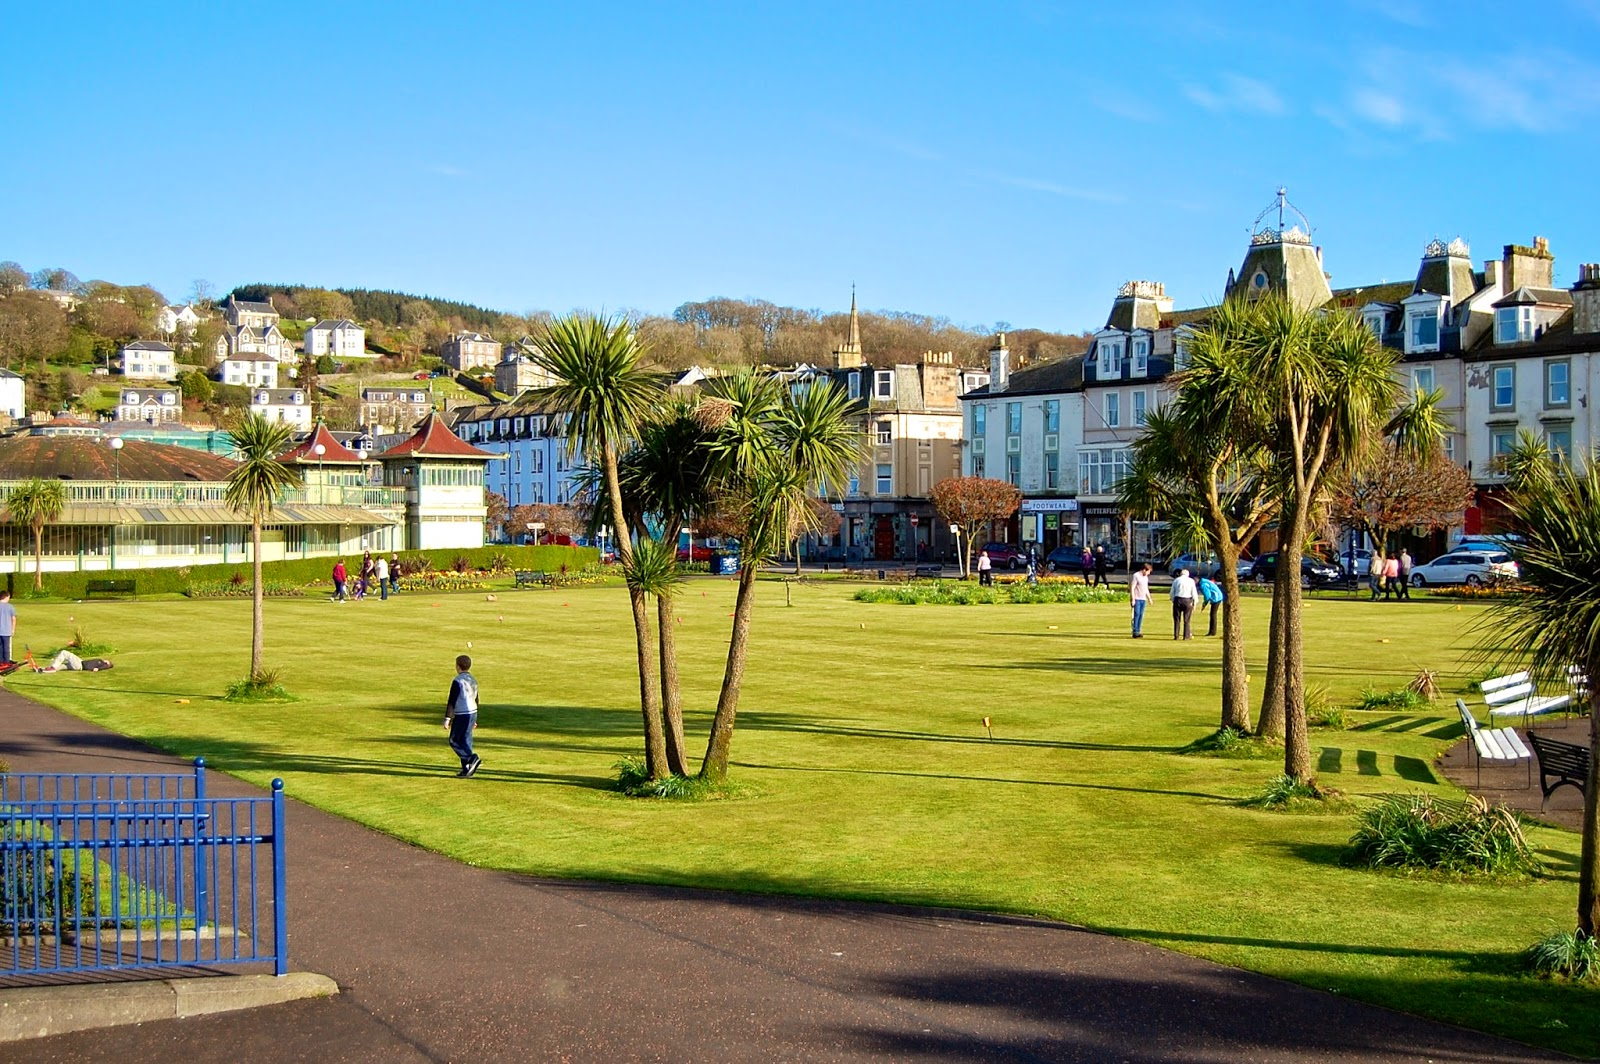 Palm trees on Rothesay's promenade